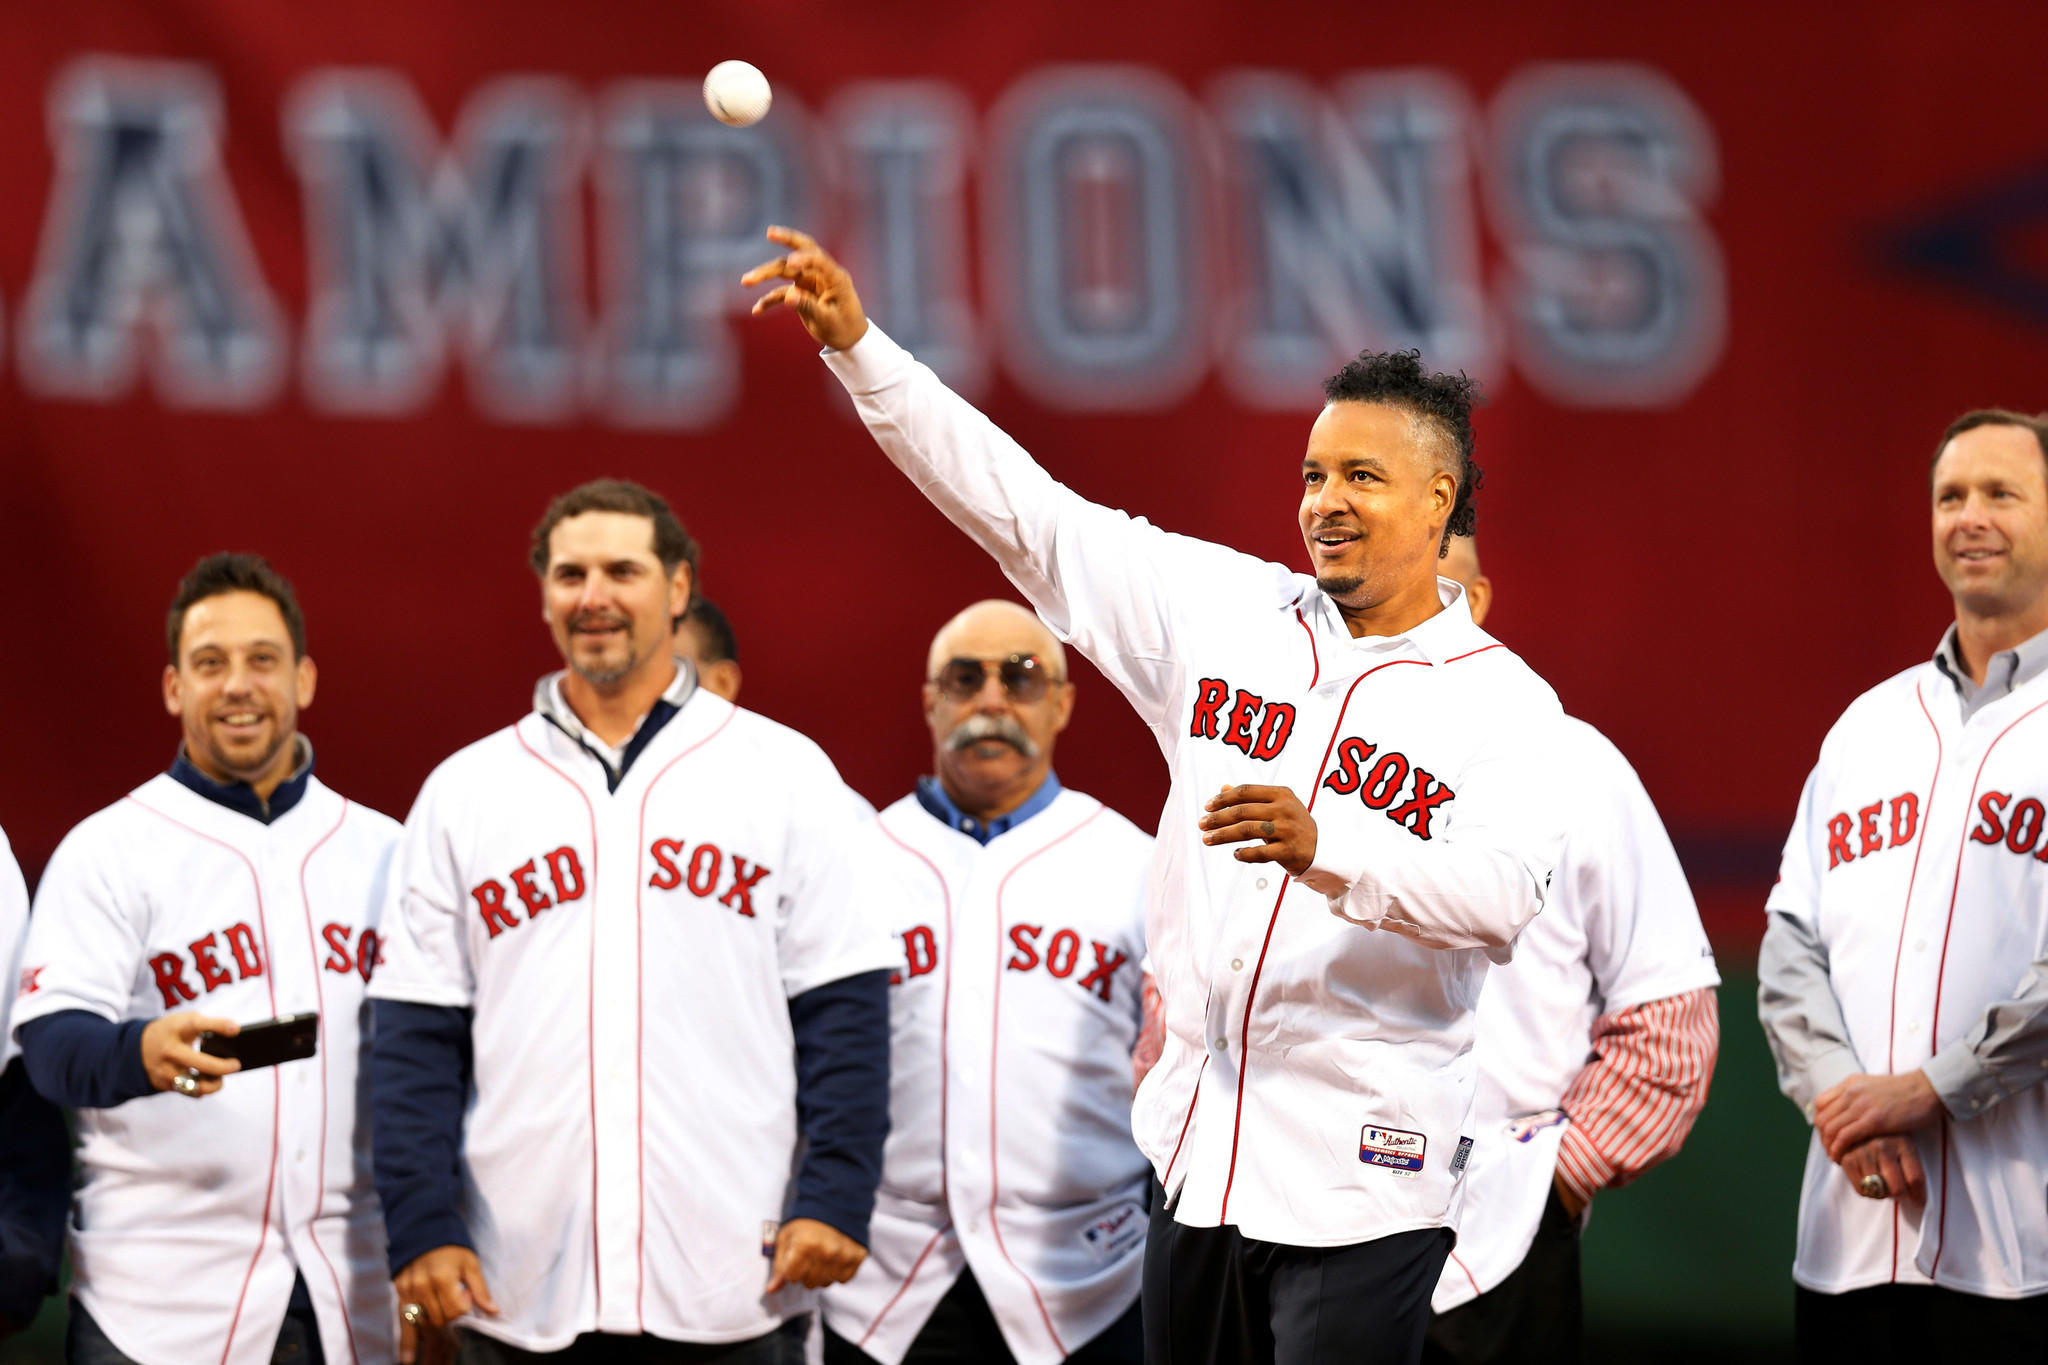 Boston Red Sox former player Manny Ramirez throws out the first pitch before the game against the Atlanta Braves at Fenway Park.